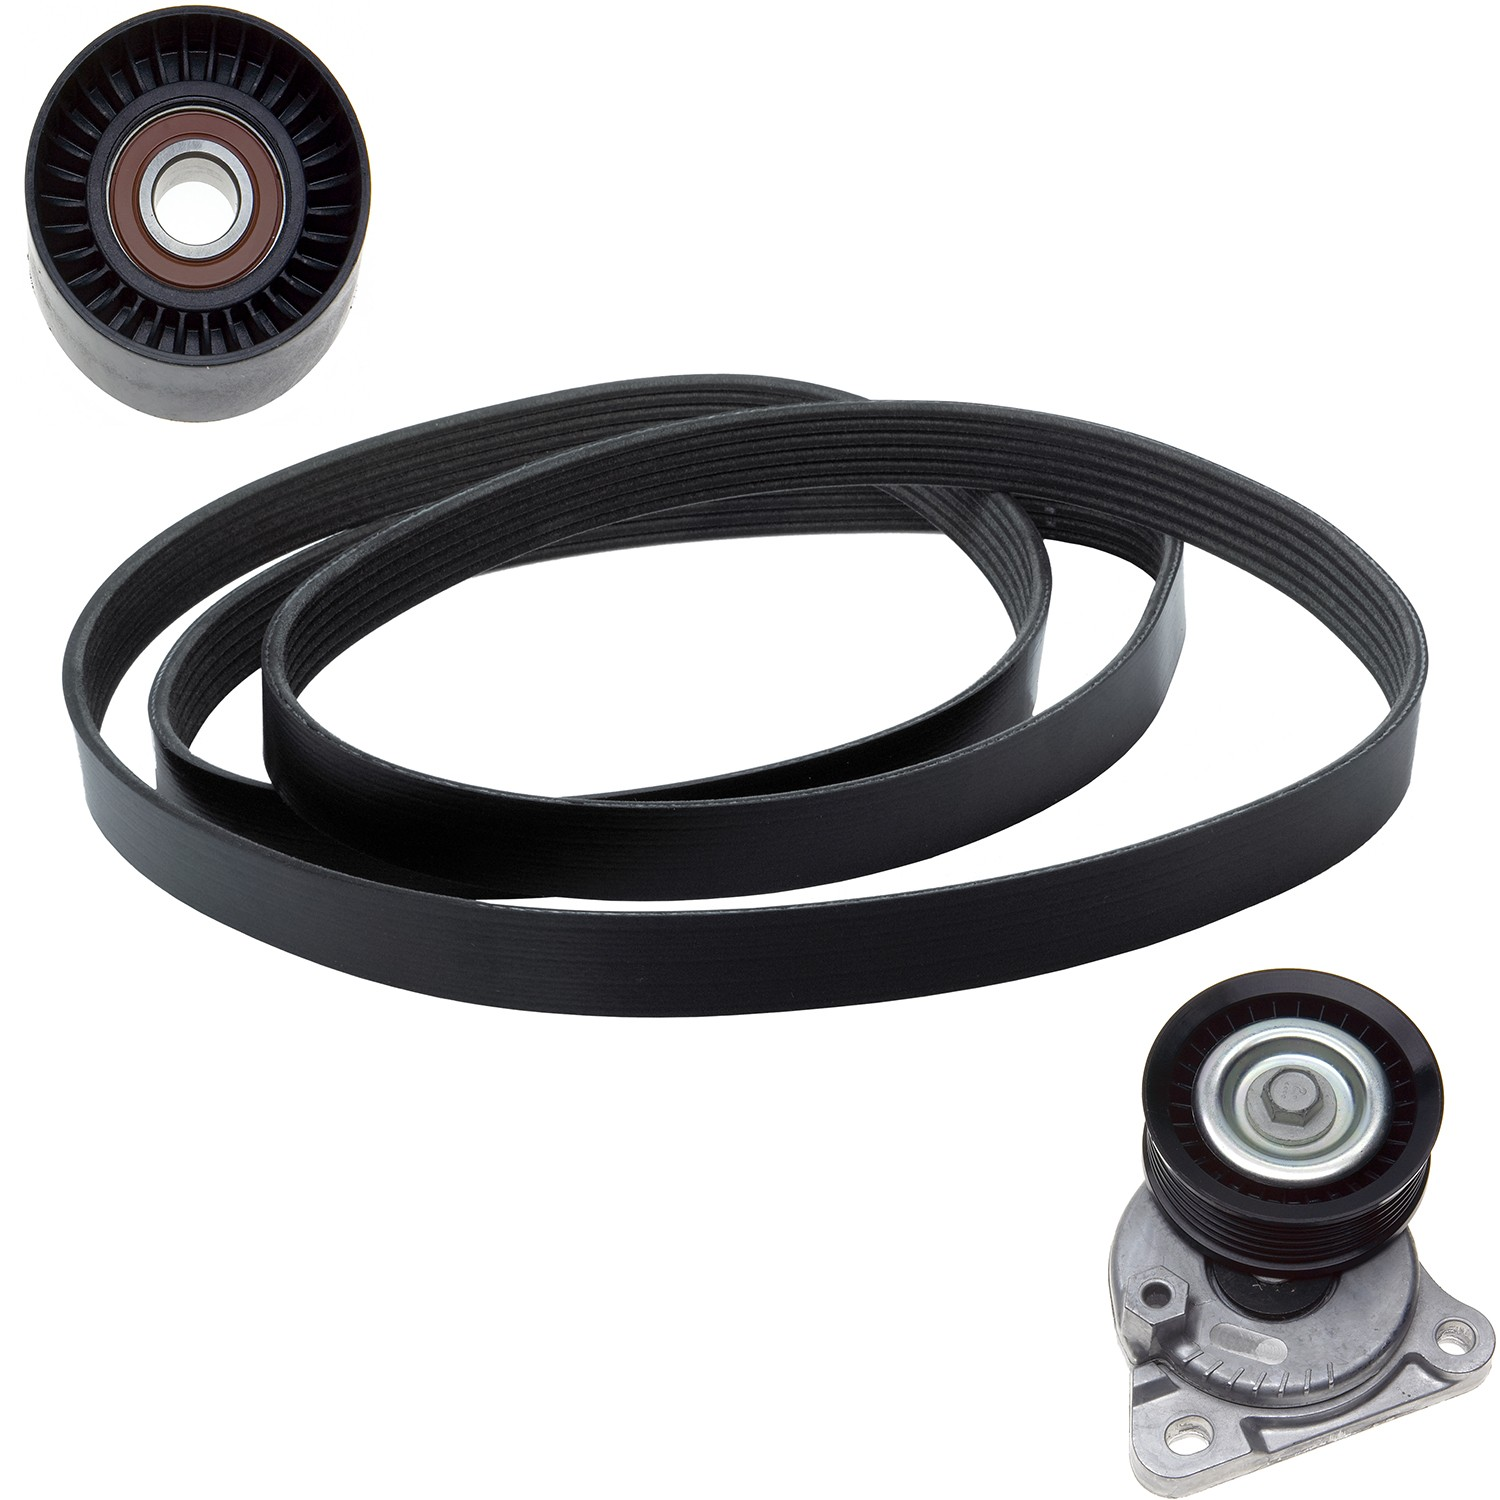 hight resolution of 2010 ford focus serpentine belt drive component kit zo ack060874